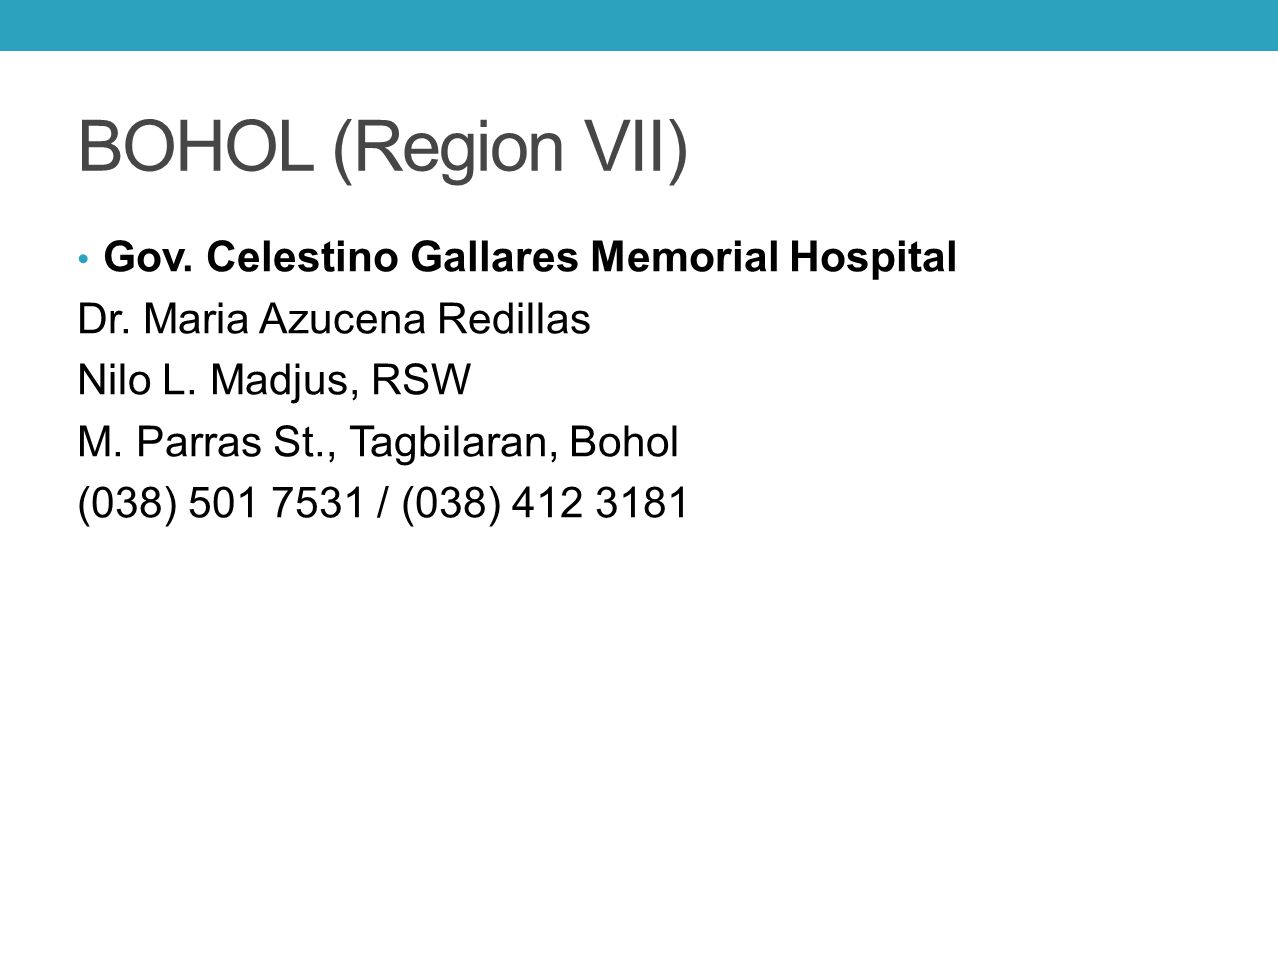 BOHOL (Region VII) Gov. Celestino Gallares Memorial Hospital